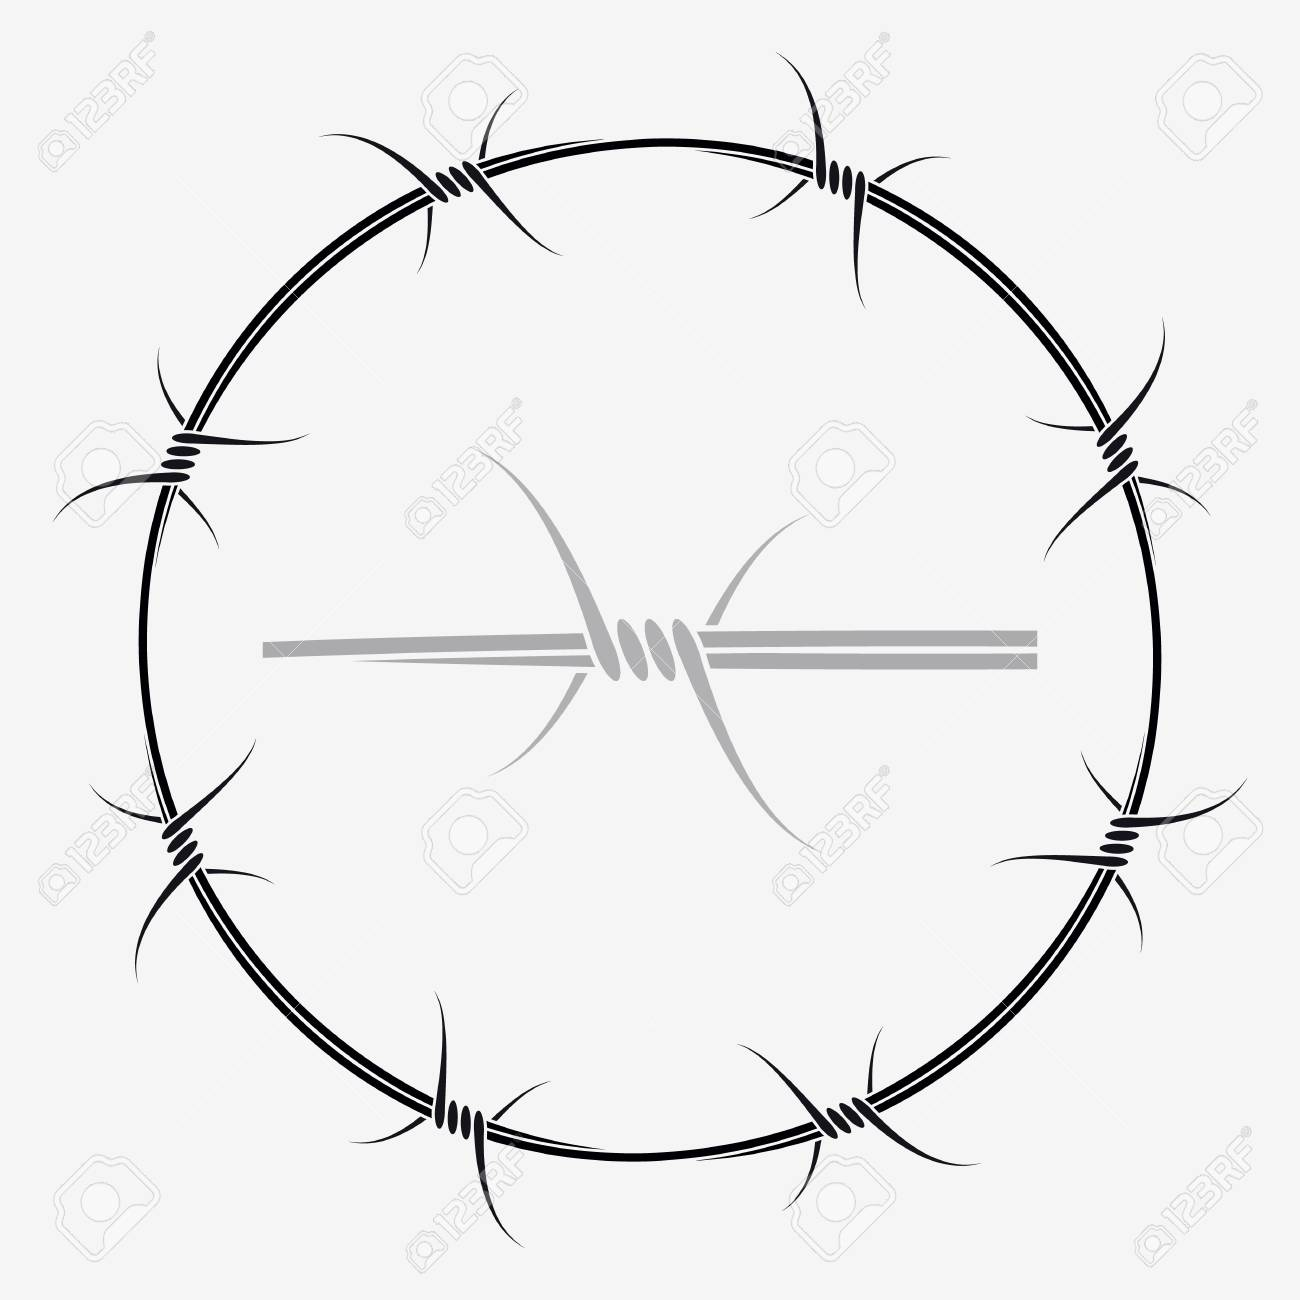 Attractive Barbed Wire Halo Sketch - Wiring Schematics and Diagrams ...